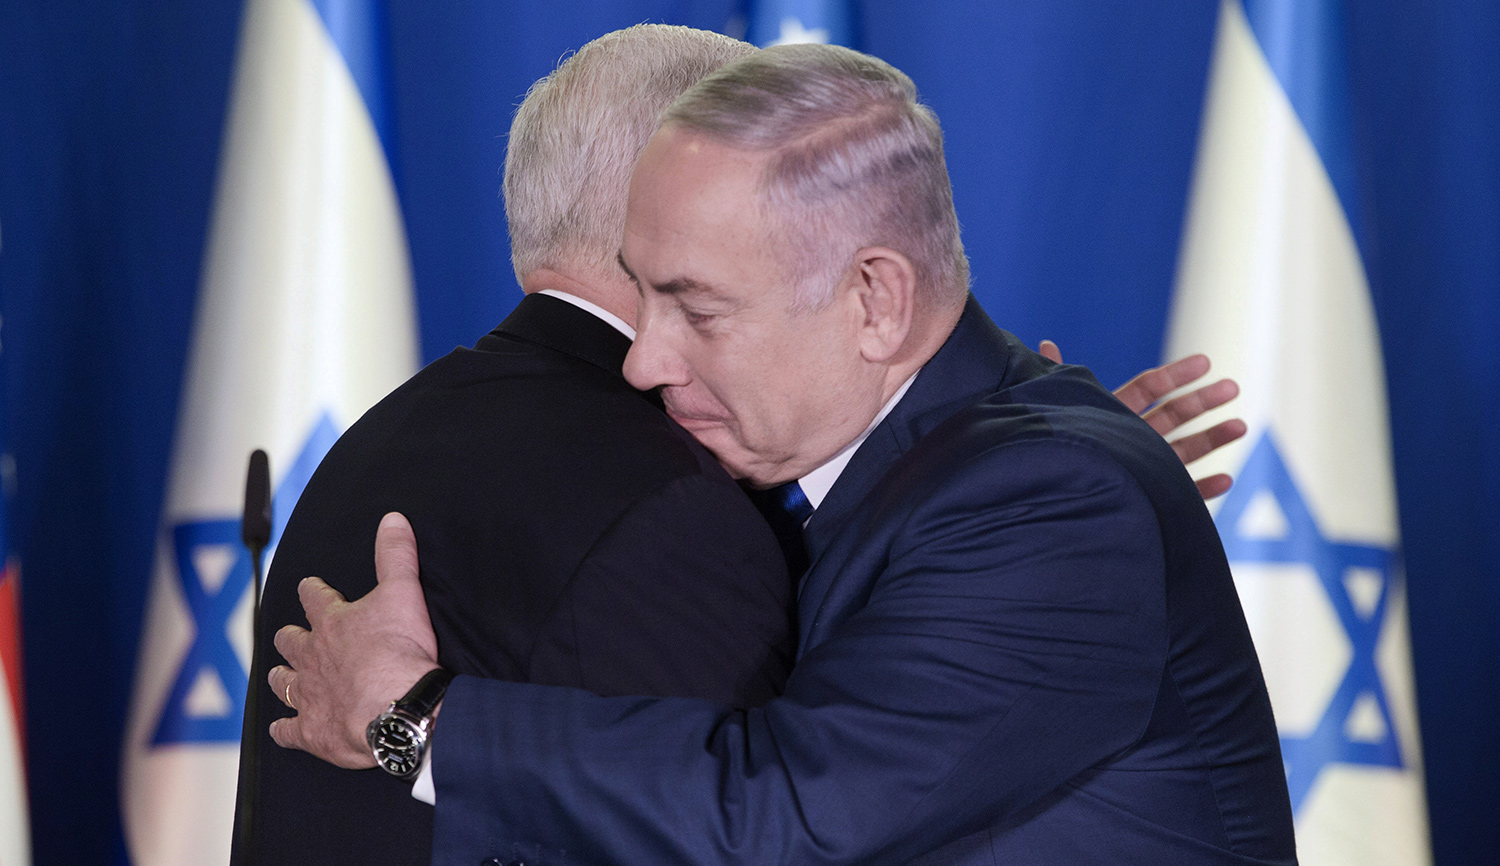 Has Israel Grown Too Dependent on the United States?